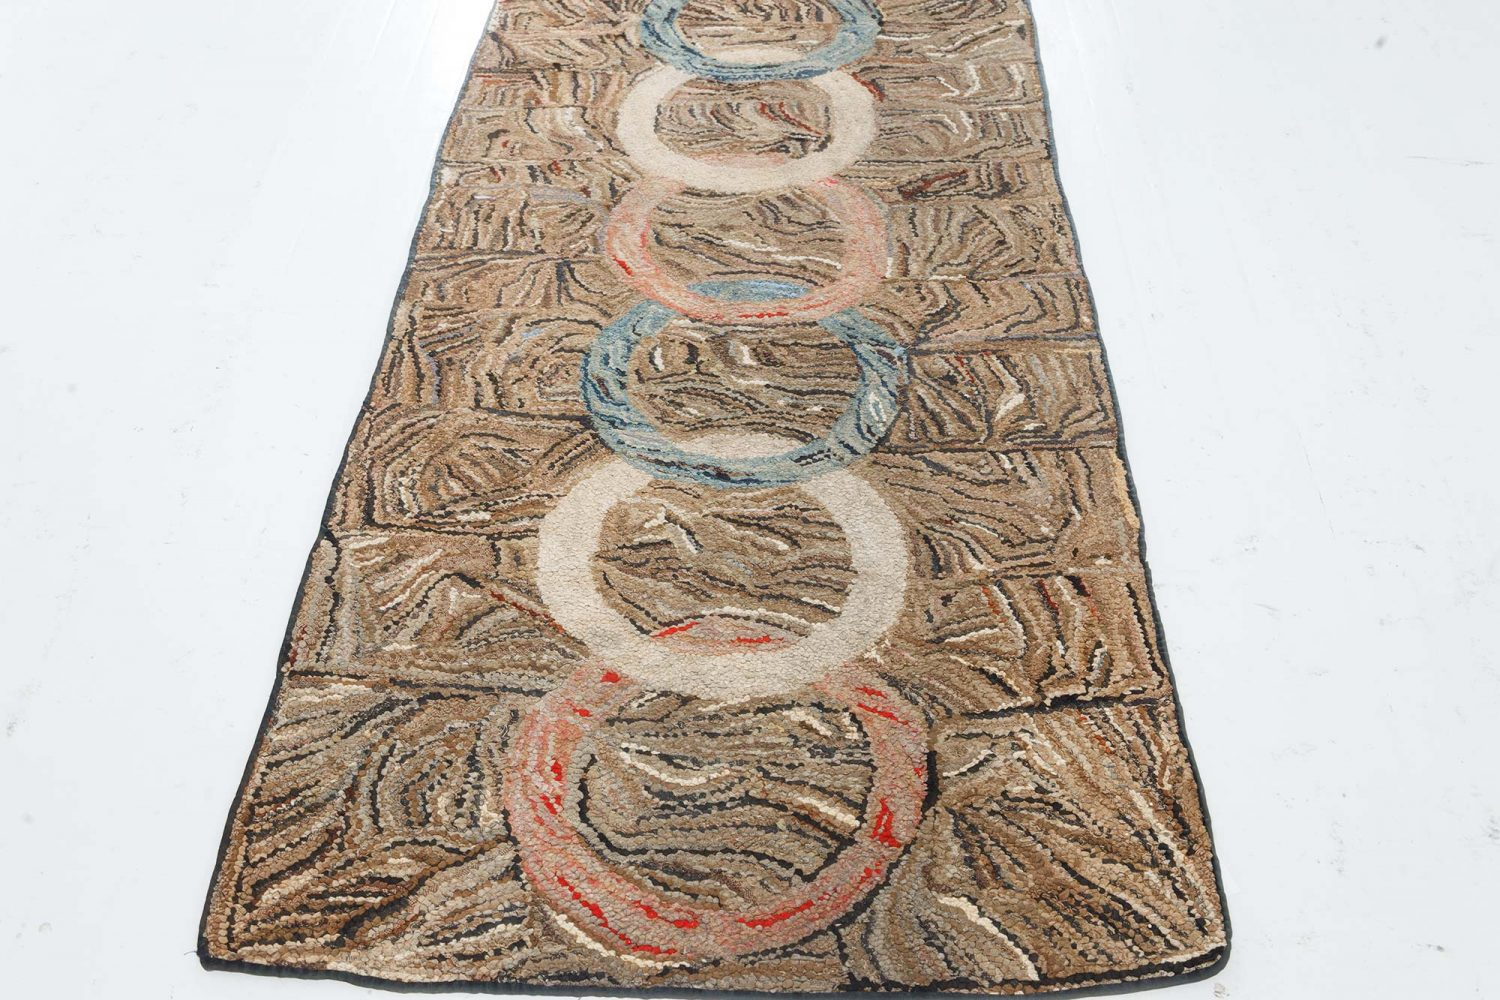 American Hooked with Overlapping Ring Hand Knotted Wool Rug BB7415